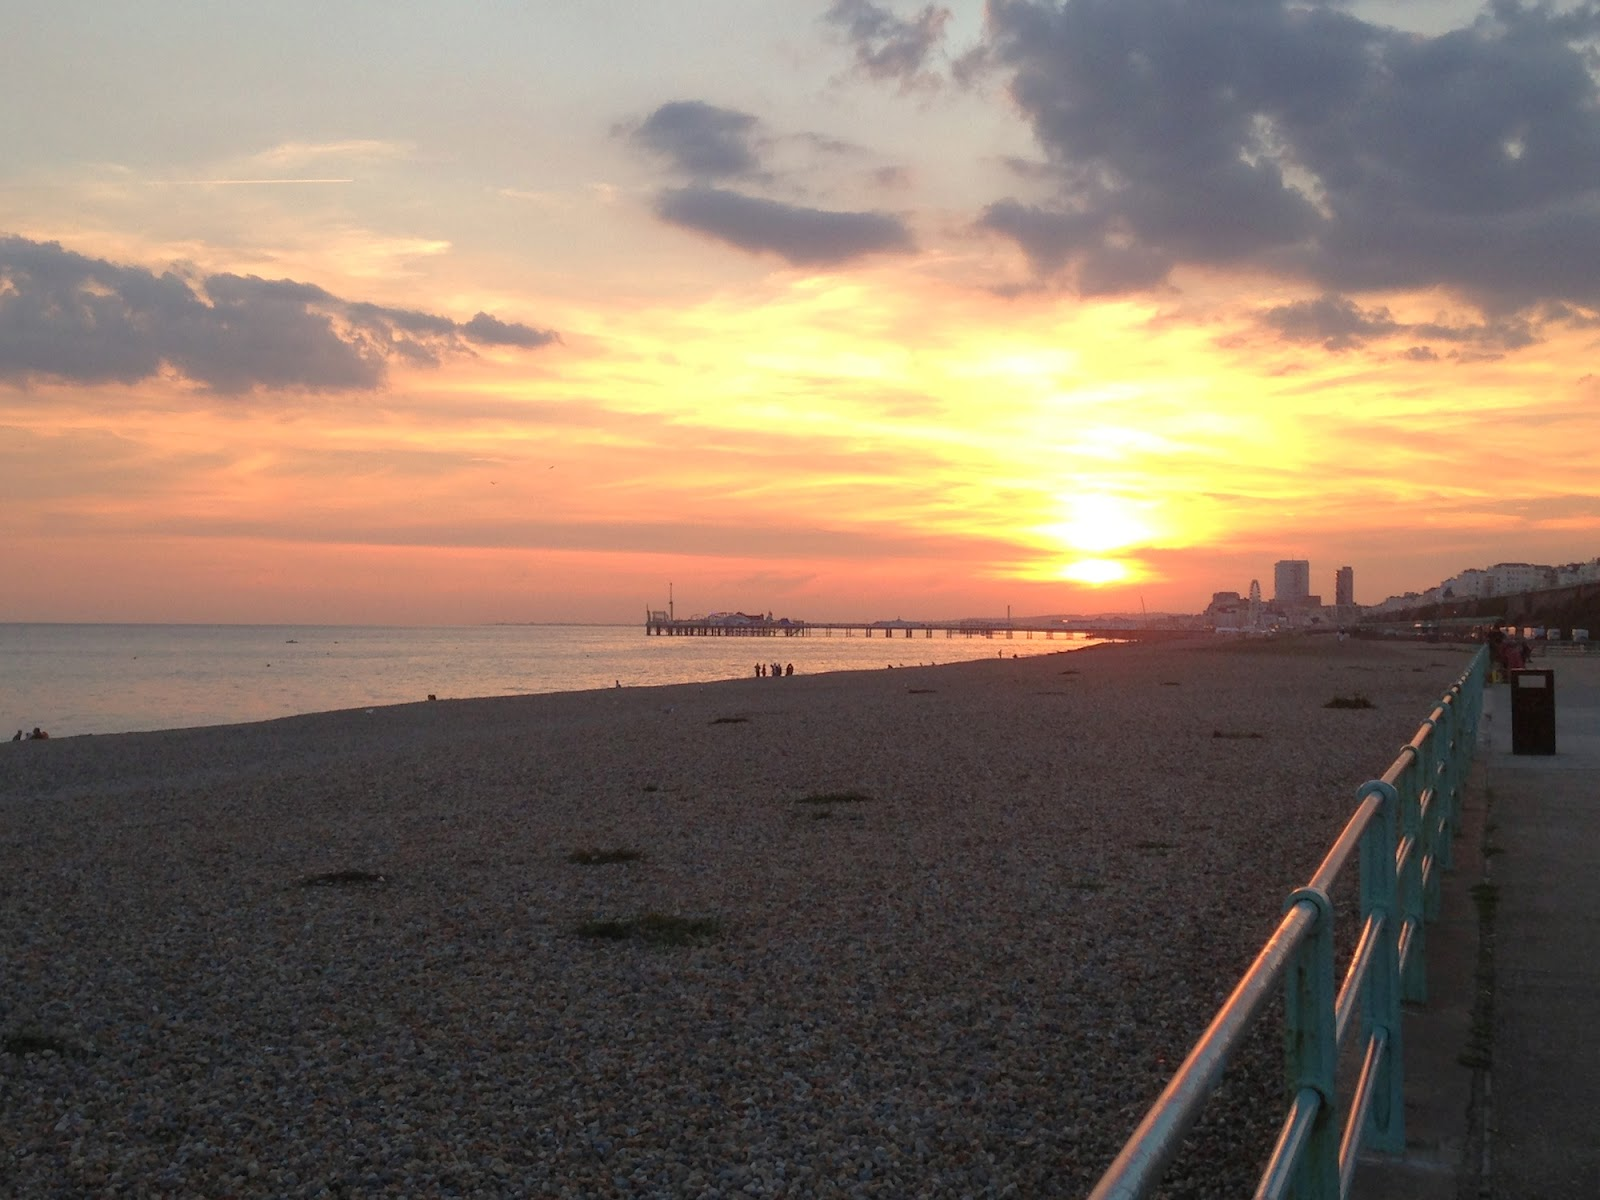 Brighton seafront sunset - copyright Tess Agnew